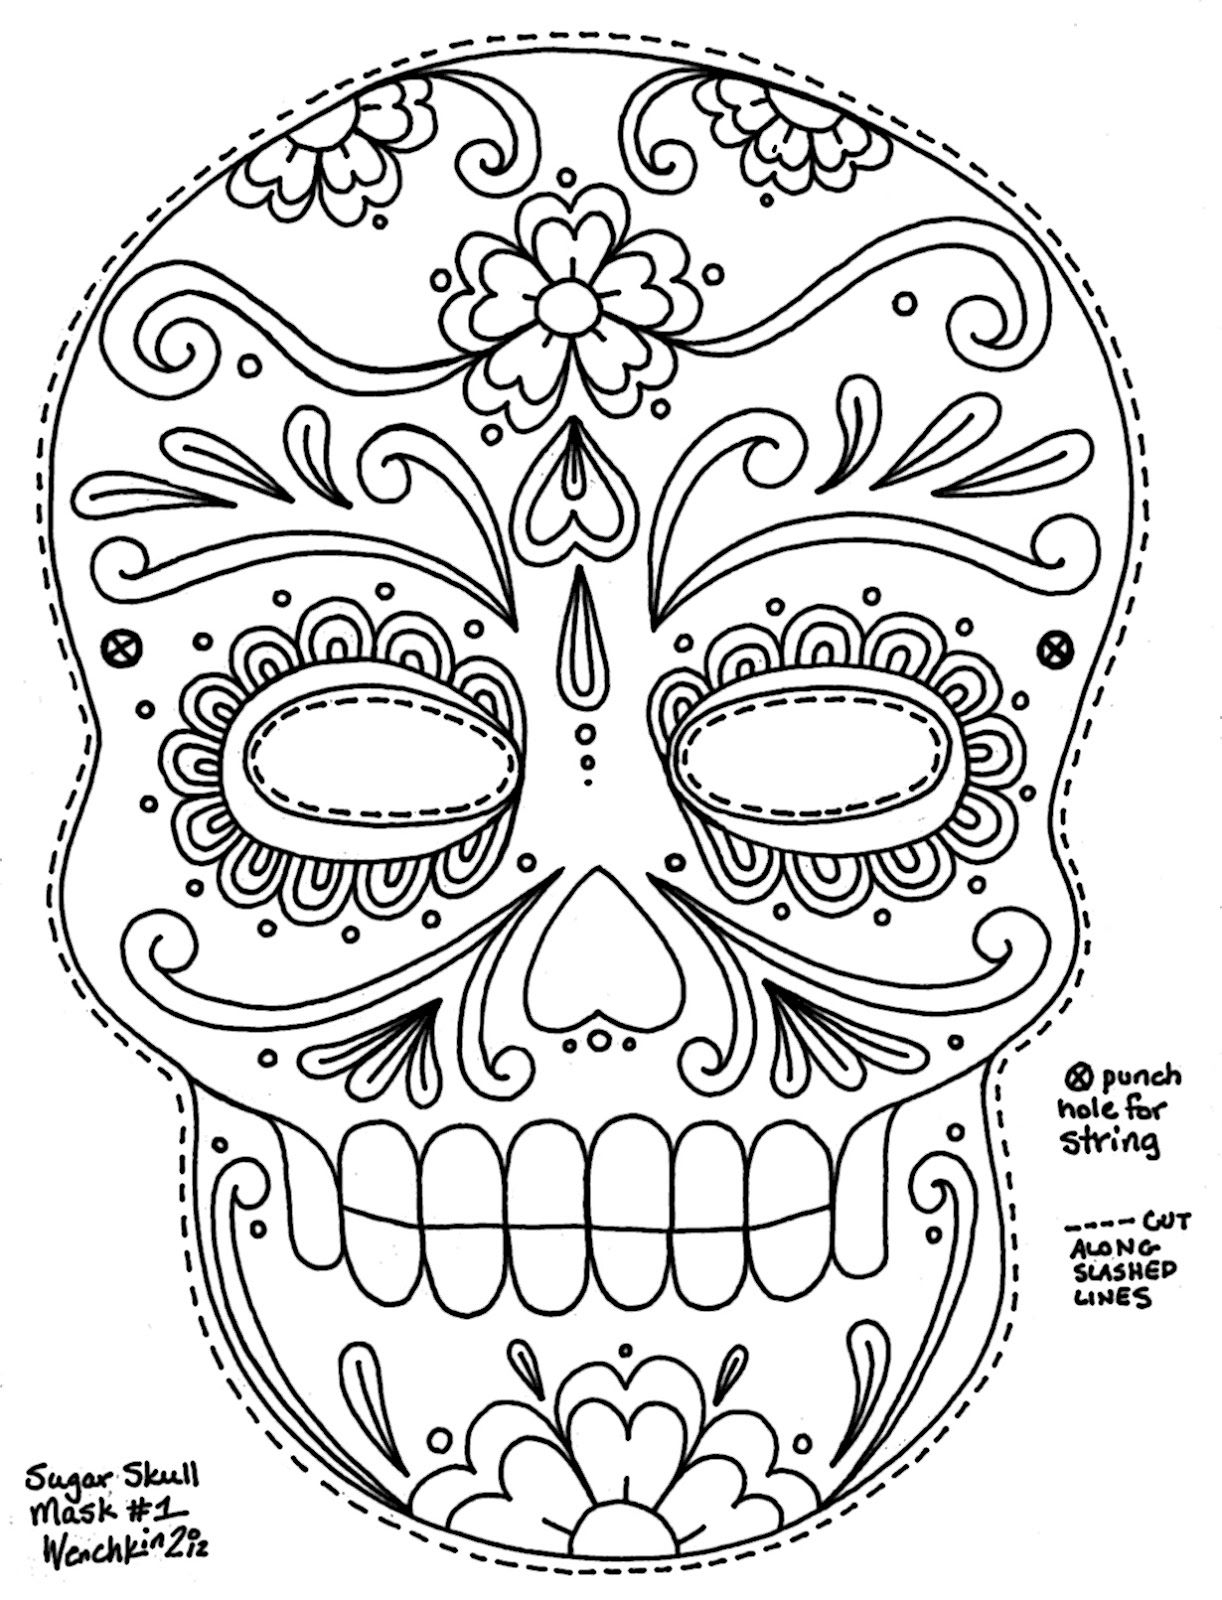 Sugar Skull Coloring Pages Pdf Free Download  Download 17h - To print for your project